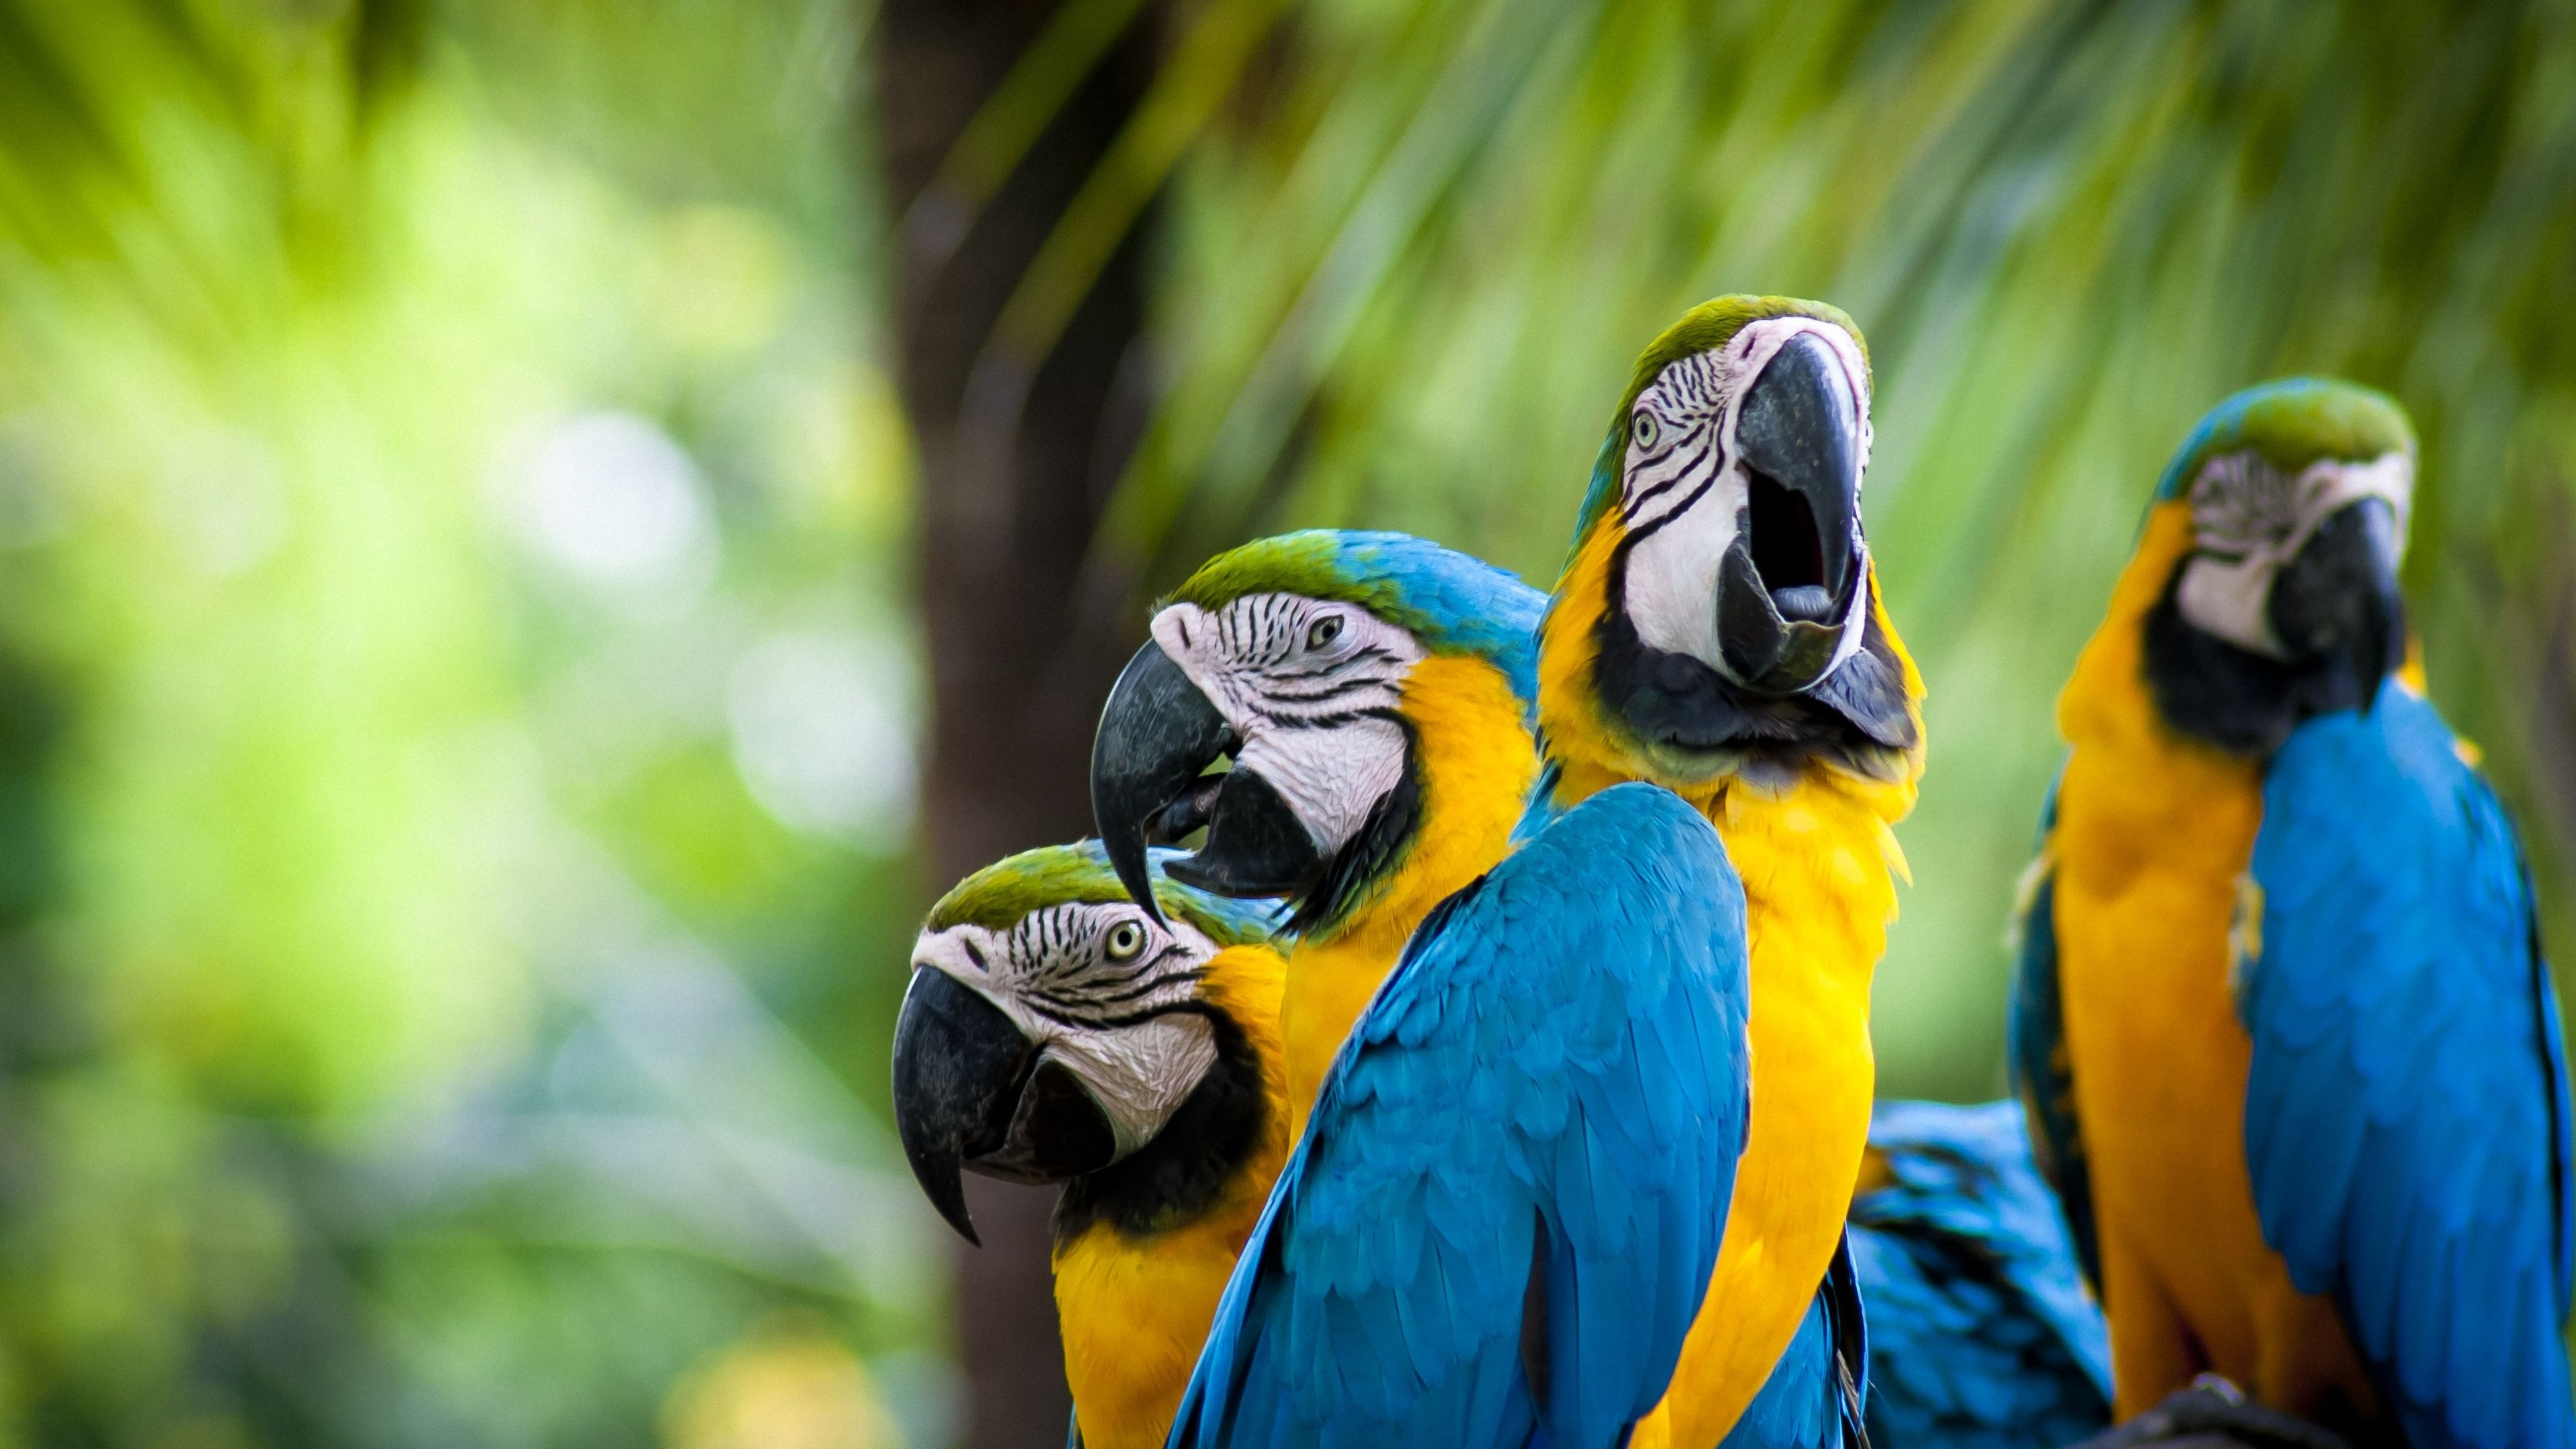 Birds 4k Wallpaper Beautiful Macaw Beautiful Birds Parrot